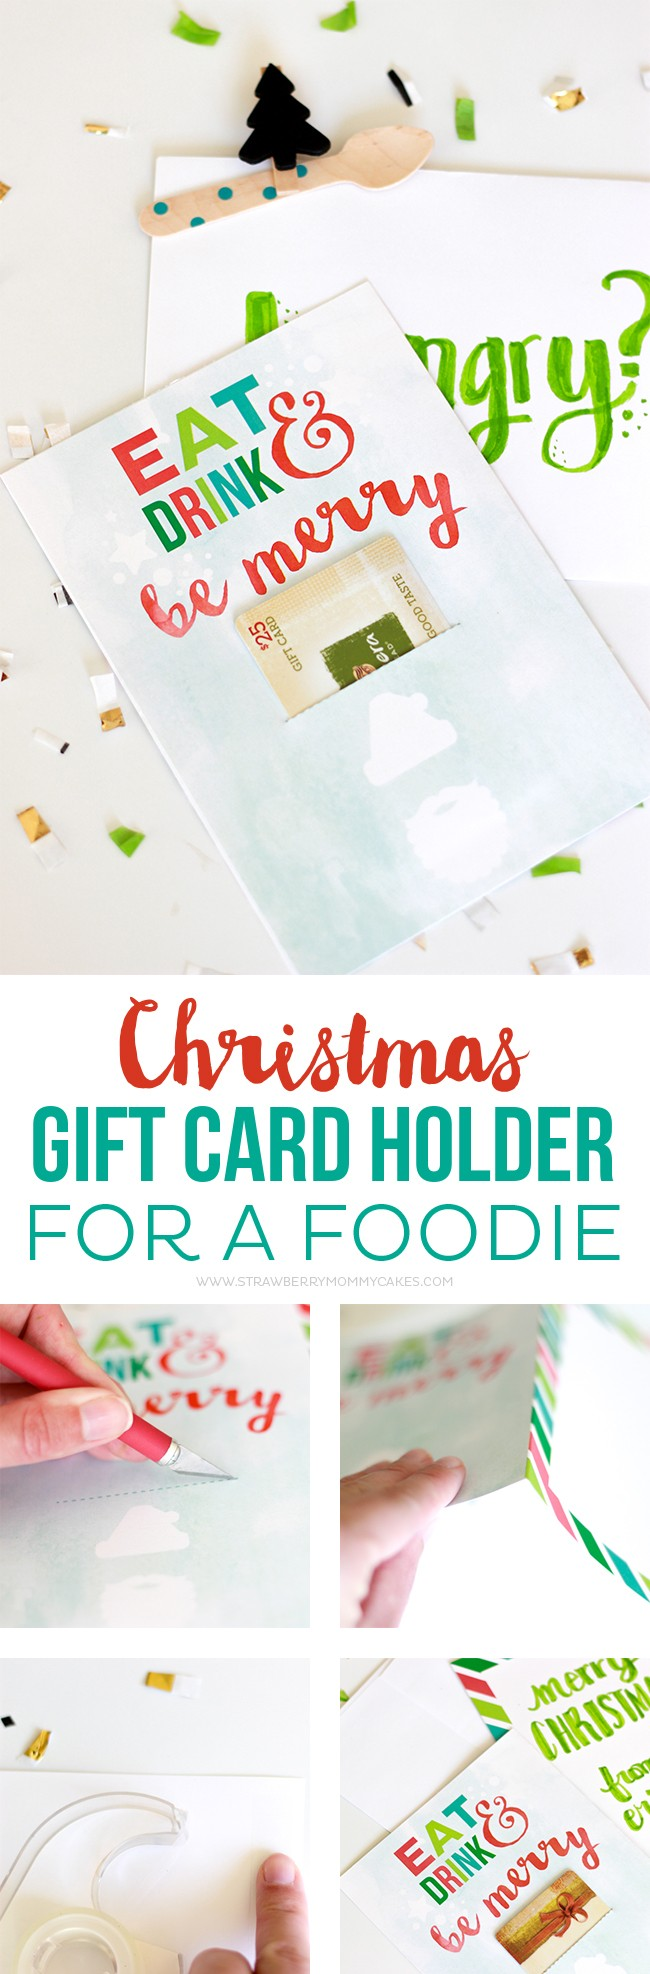 How To Make A Christmas Gift Card Holder For A Foodie Printable Crush